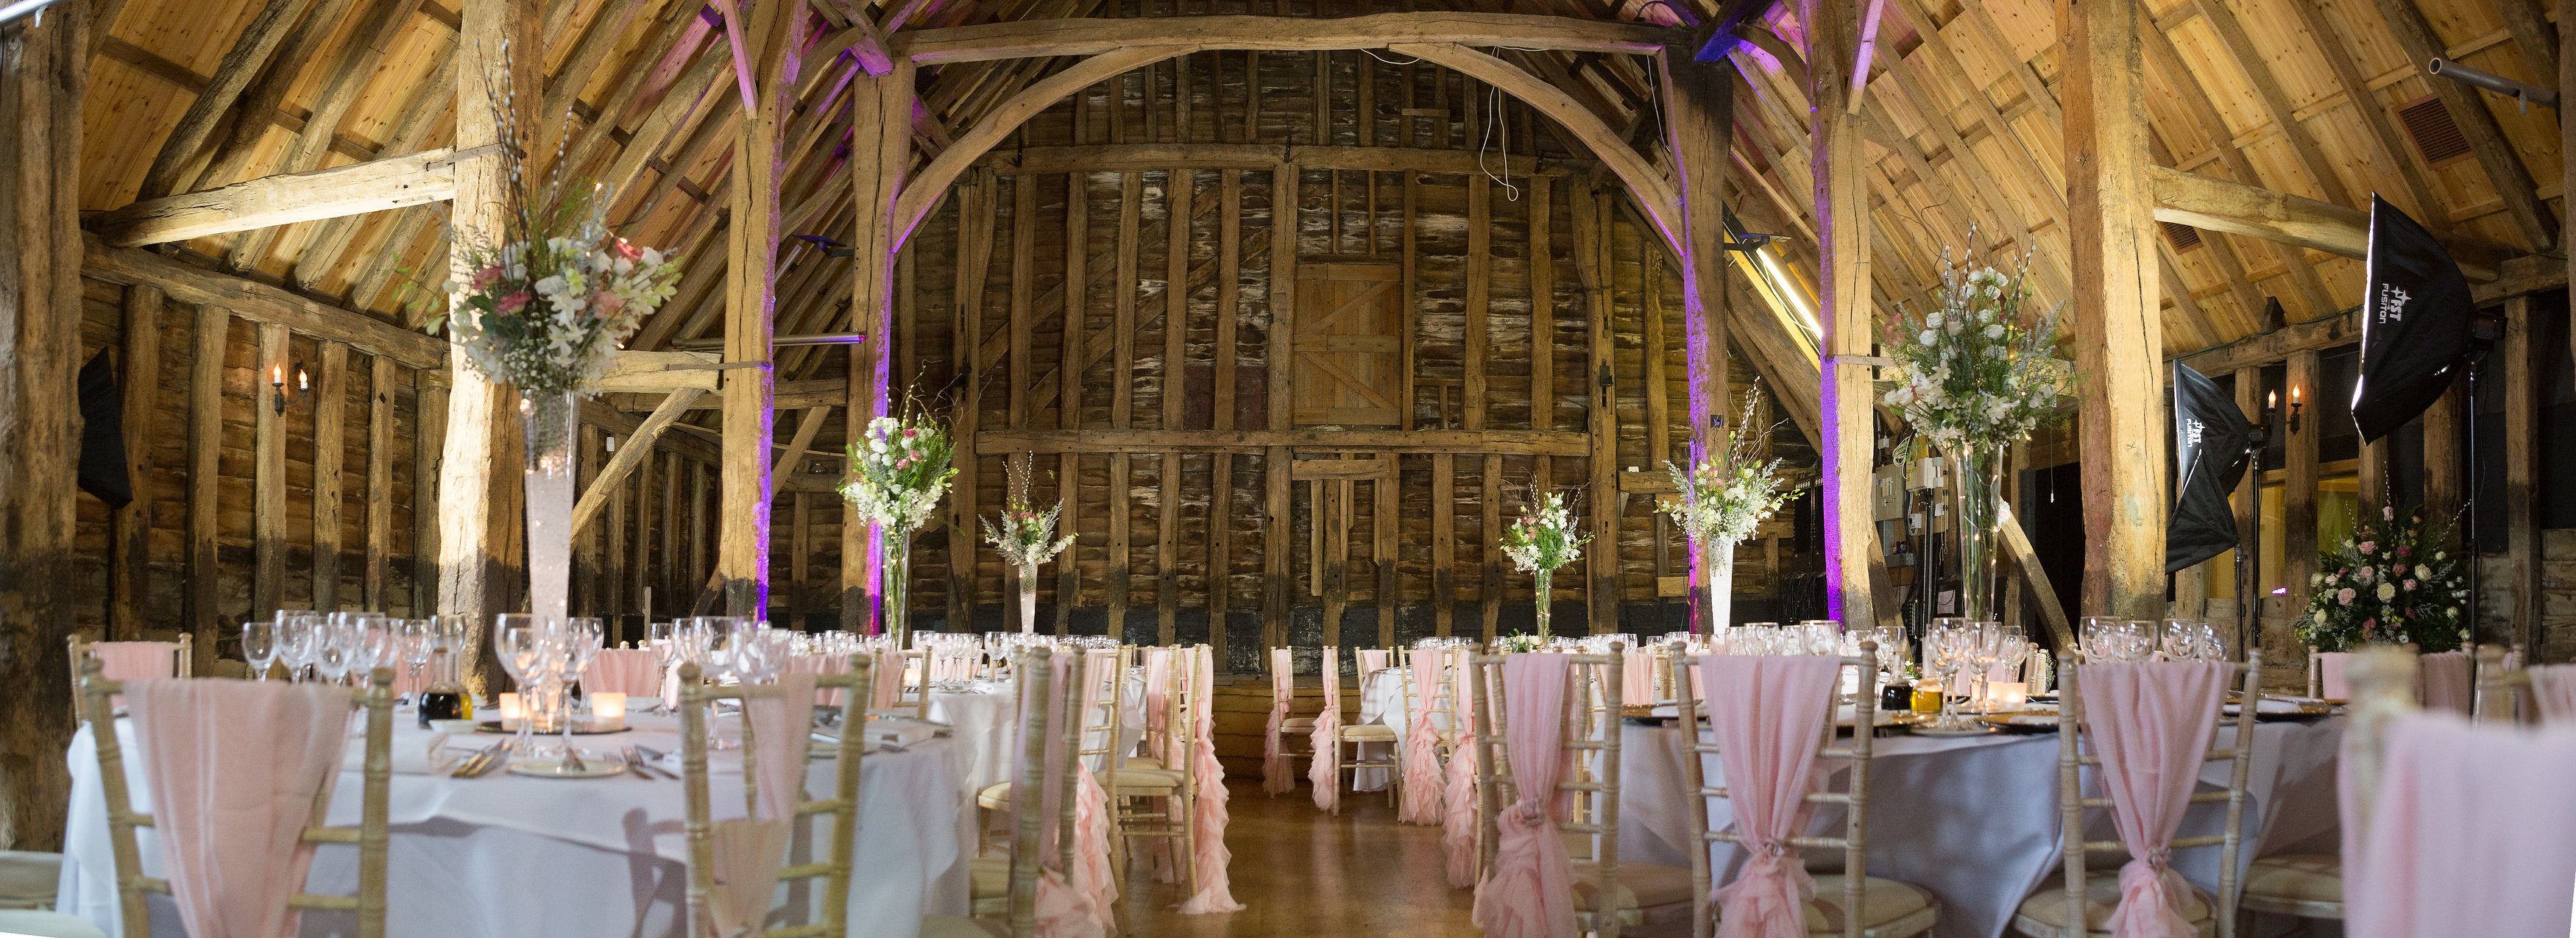 high barn essex, wedding venue essex, barn wedding essex